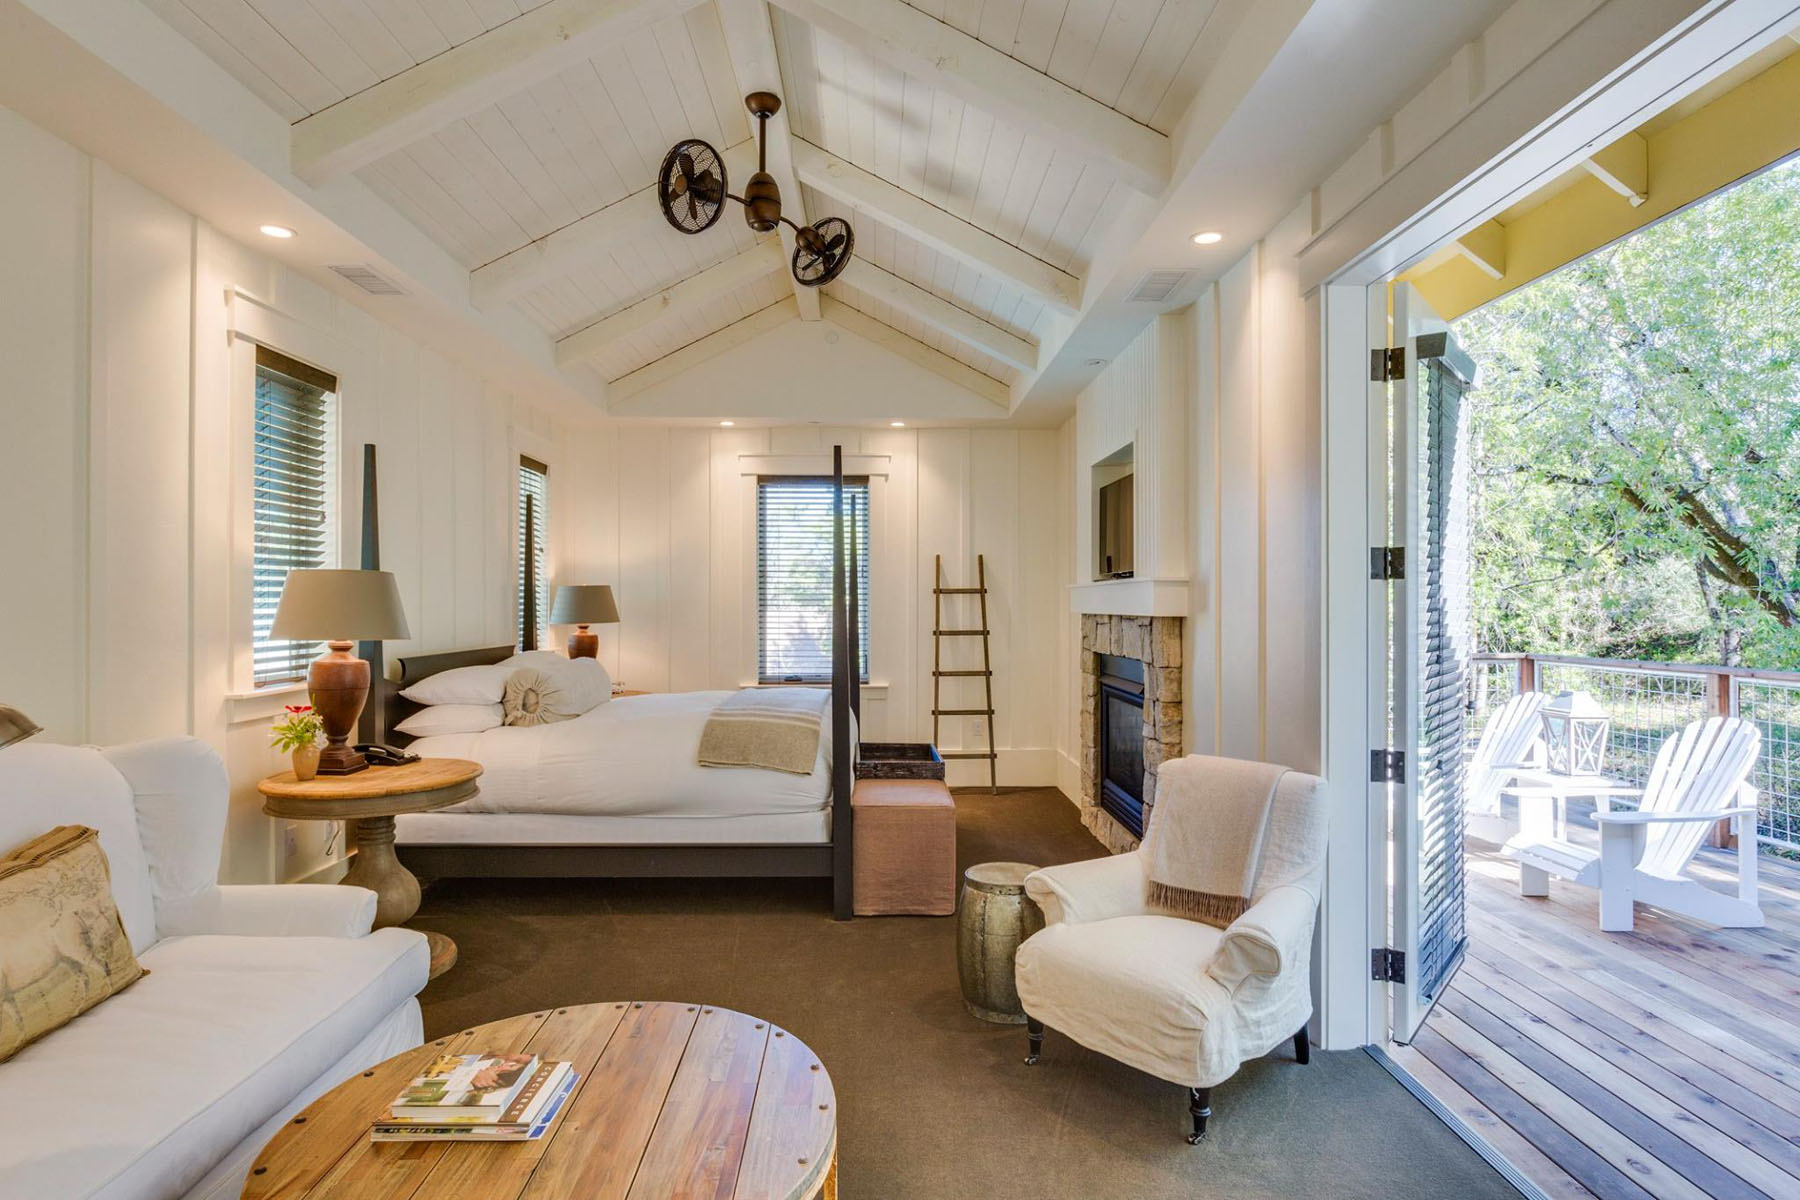 Farmhouse inn a romantic boutique hotel in california for Southern california interiors